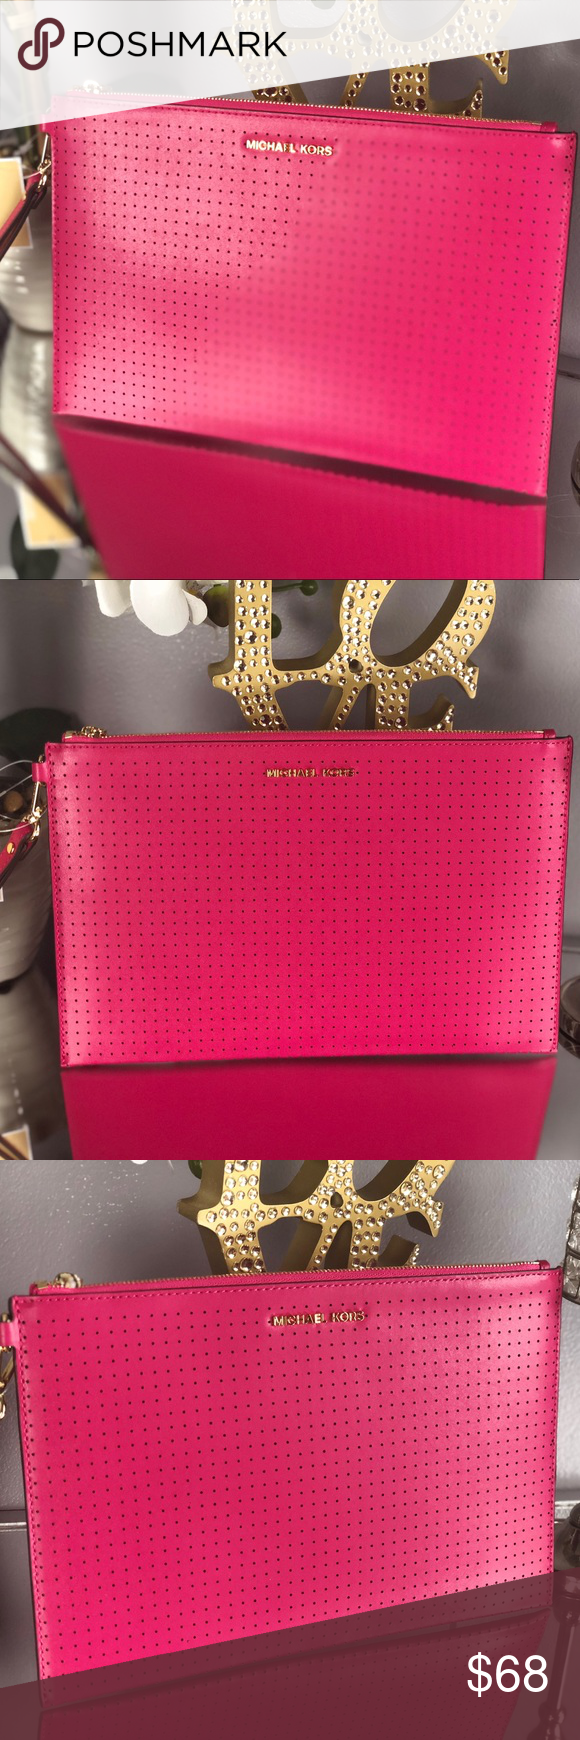 efd078084d90 Michael Kors Ultra Pink Leather Clutch Wristlet Michael Kors Ultra Pink  Leather Zip Clutch Wristlet BRAND NEW...NWT Retail Price   108 +tax Color   Ultra ...